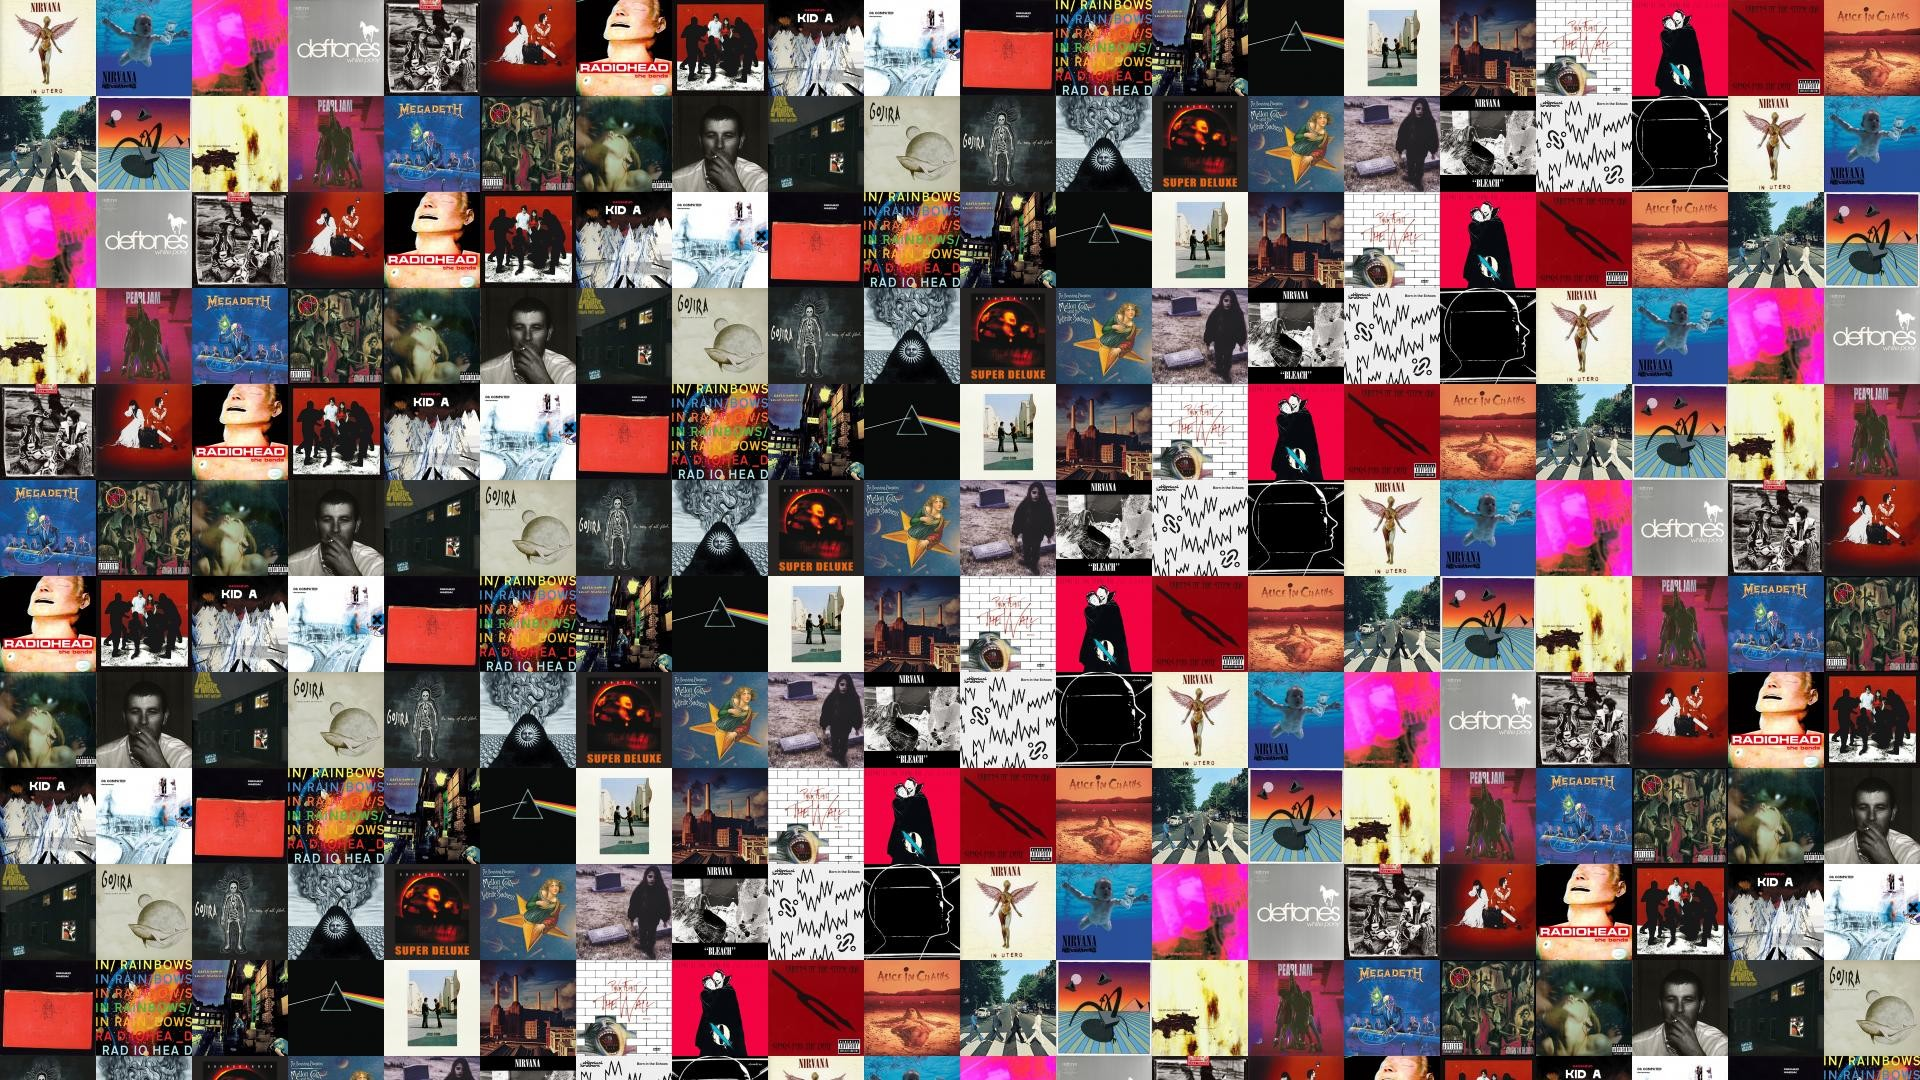 Res: 1920x1080, Download this free wallpaper with images of Nirvana – In Utero, Nirvana –  Nevermind, My Bloody Valentine – Loveless, Deftones – White Pony, ...